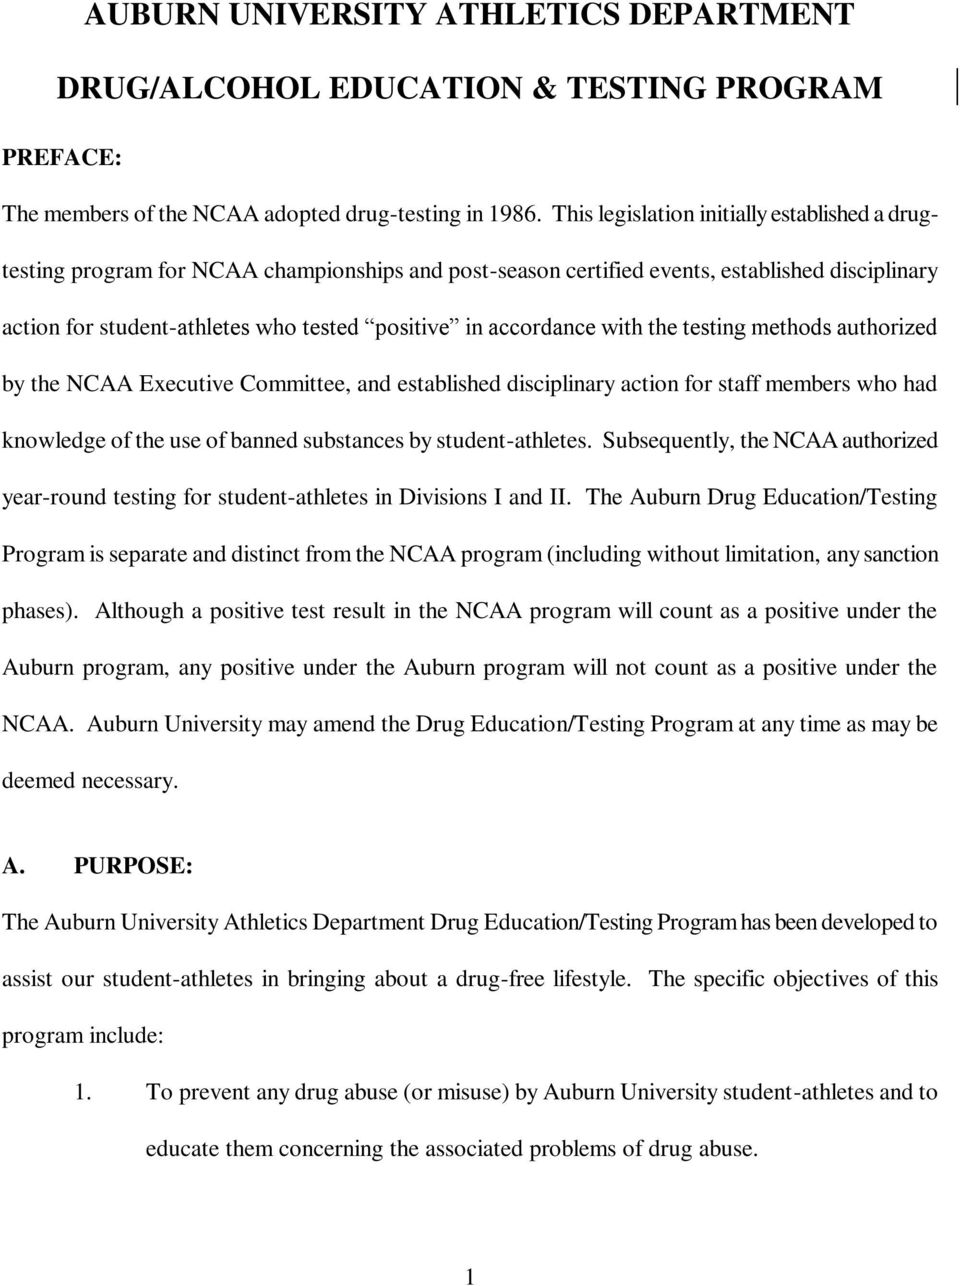 accordance with the testing methods authorized by the NCAA Executive Committee, and established disciplinary action for staff members who had knowledge of the use of banned substances by